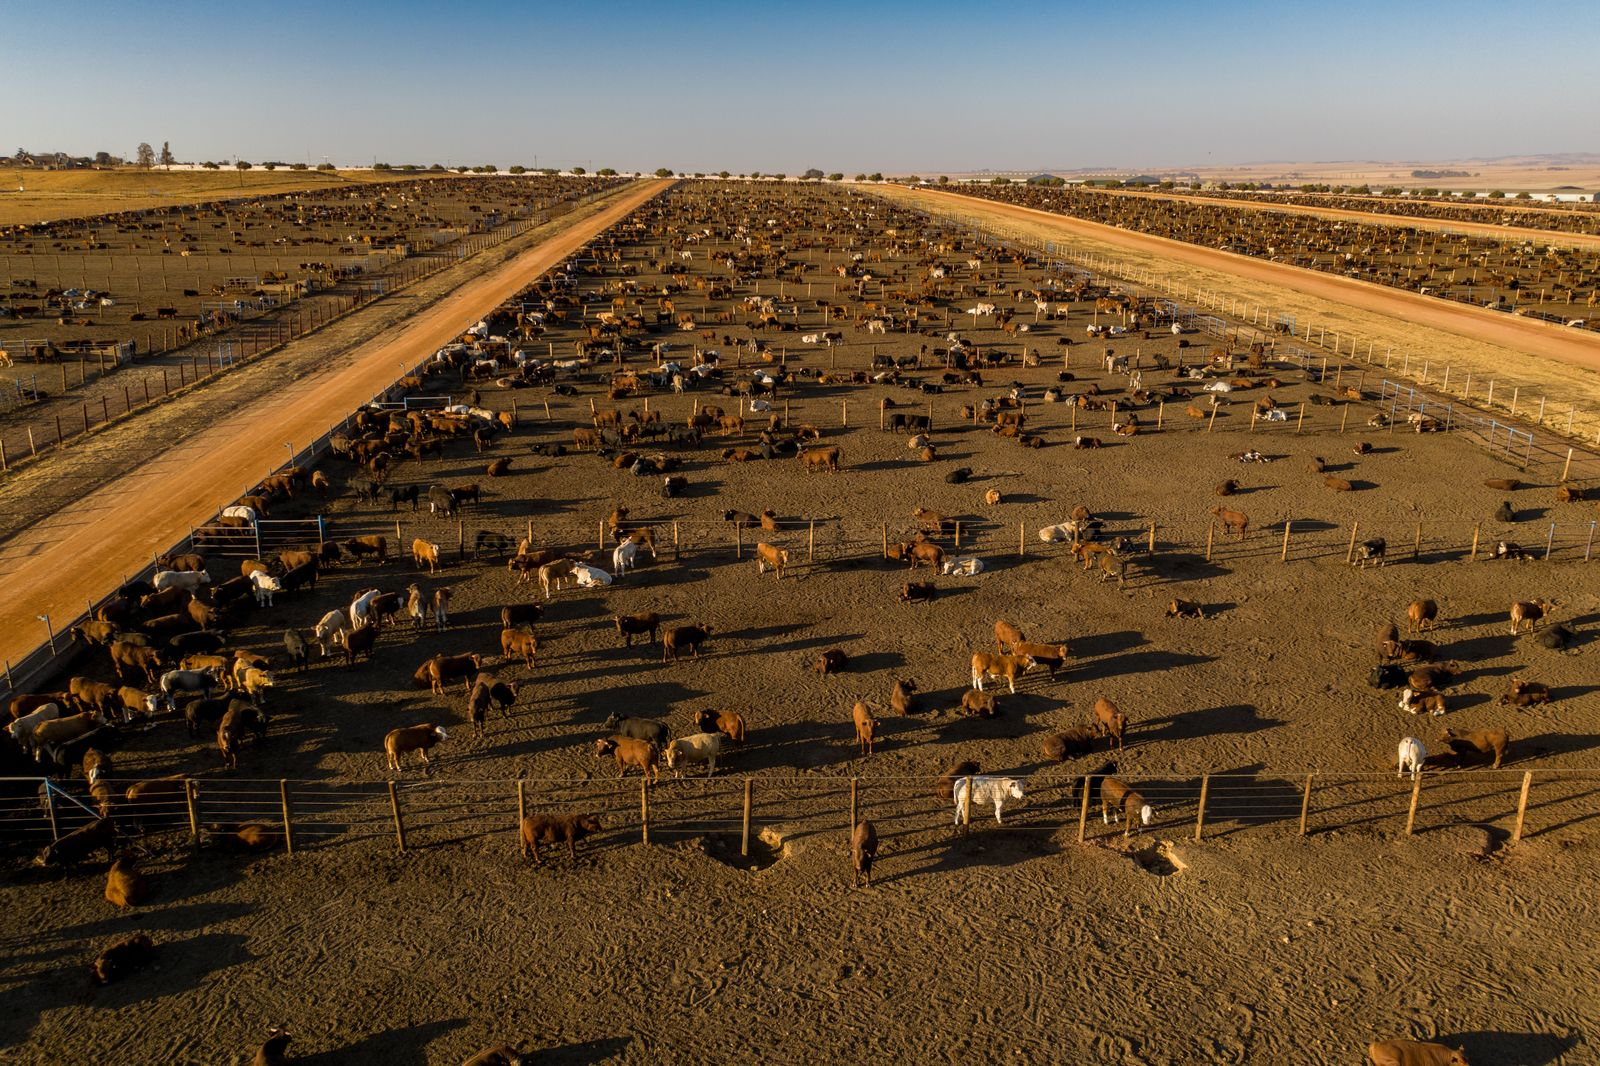 Aerial view of a large cattle feedlot